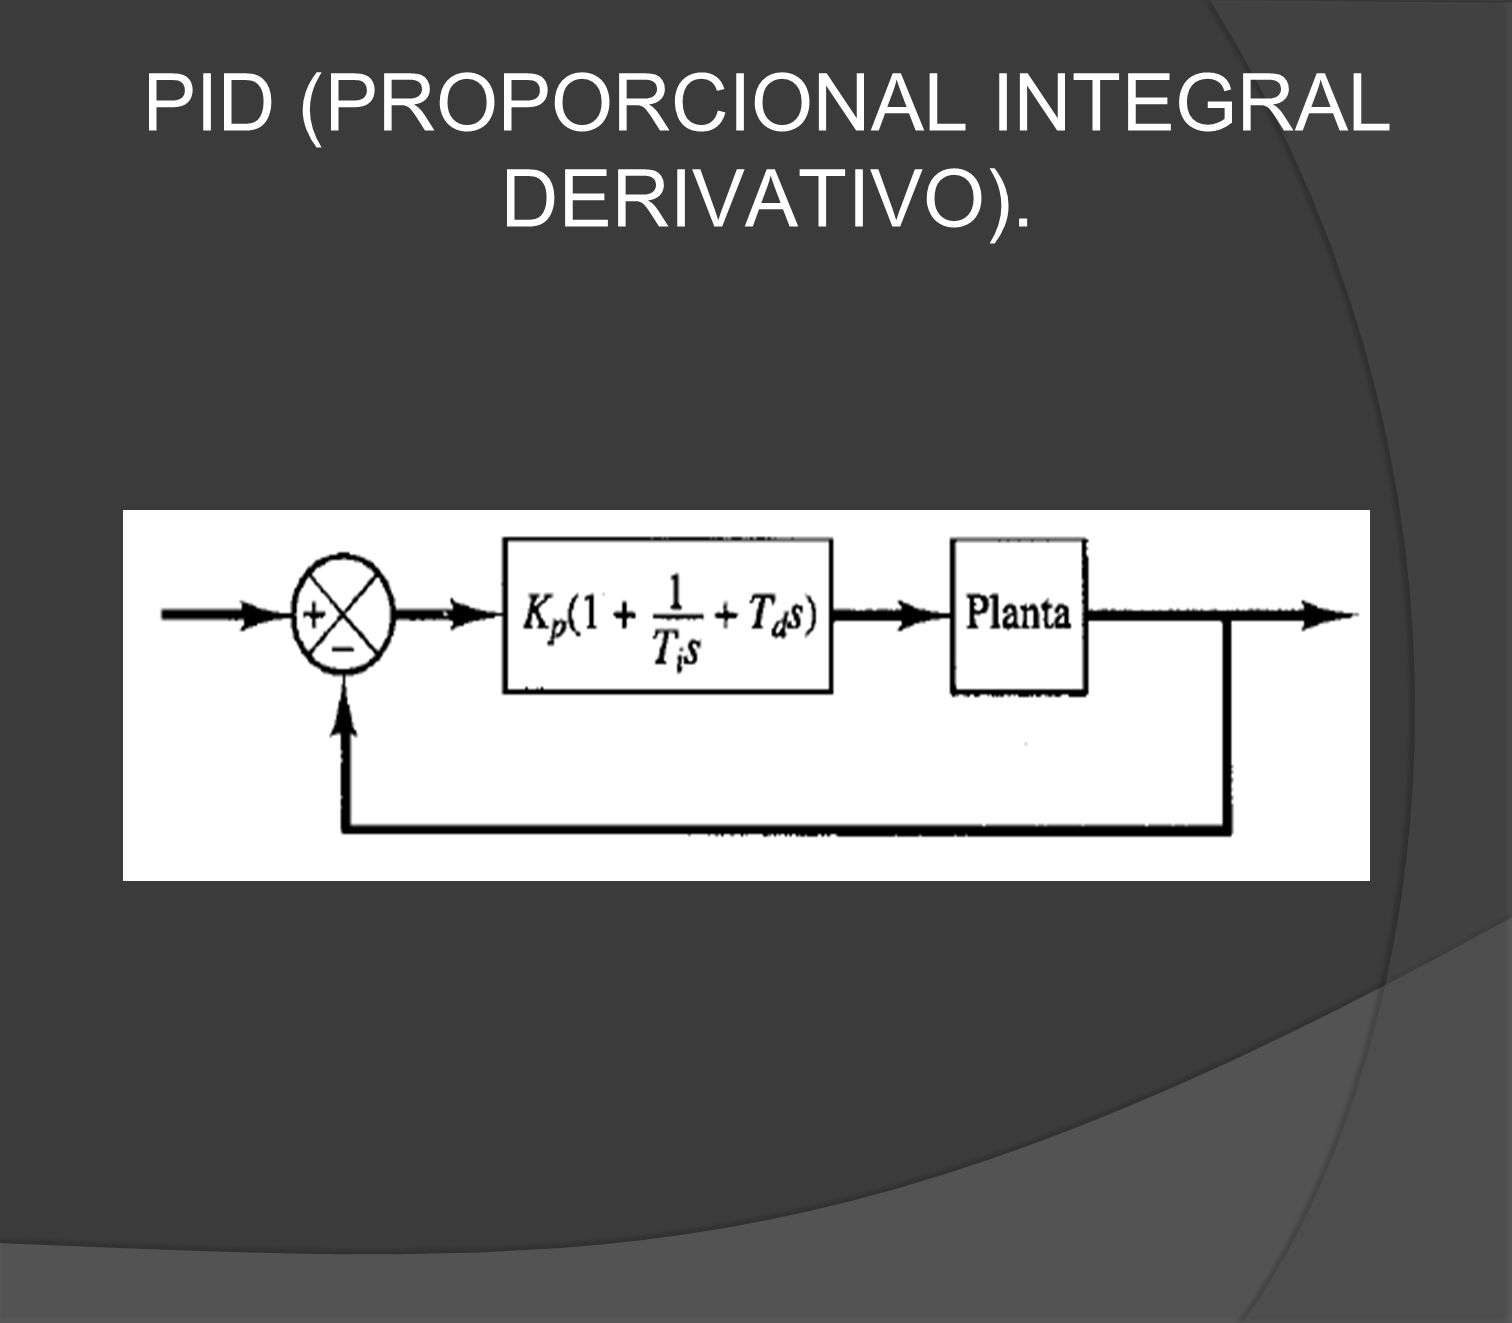 PID (PROPORCIONAL INTEGRAL DERIVATIVO).